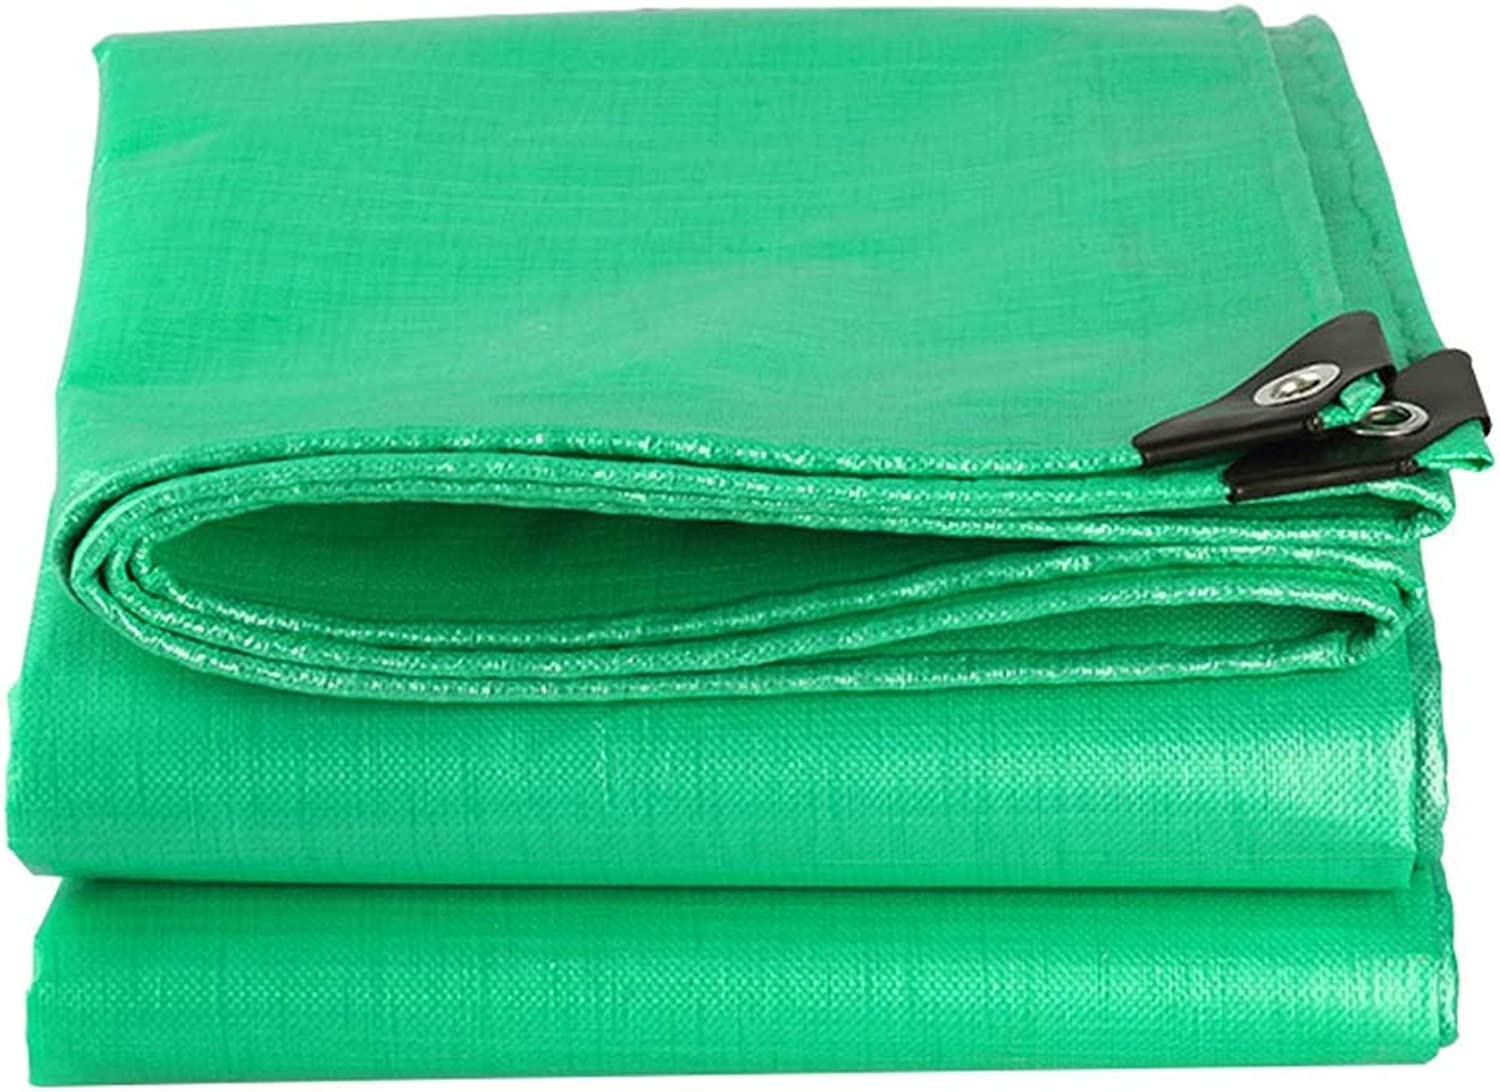 Tarps Waterproof Tarpaulin Sunscreen Cloth Shrink Proof with Heat Sealed Seams Tent Shelter for Farmers Painters Campers,Green